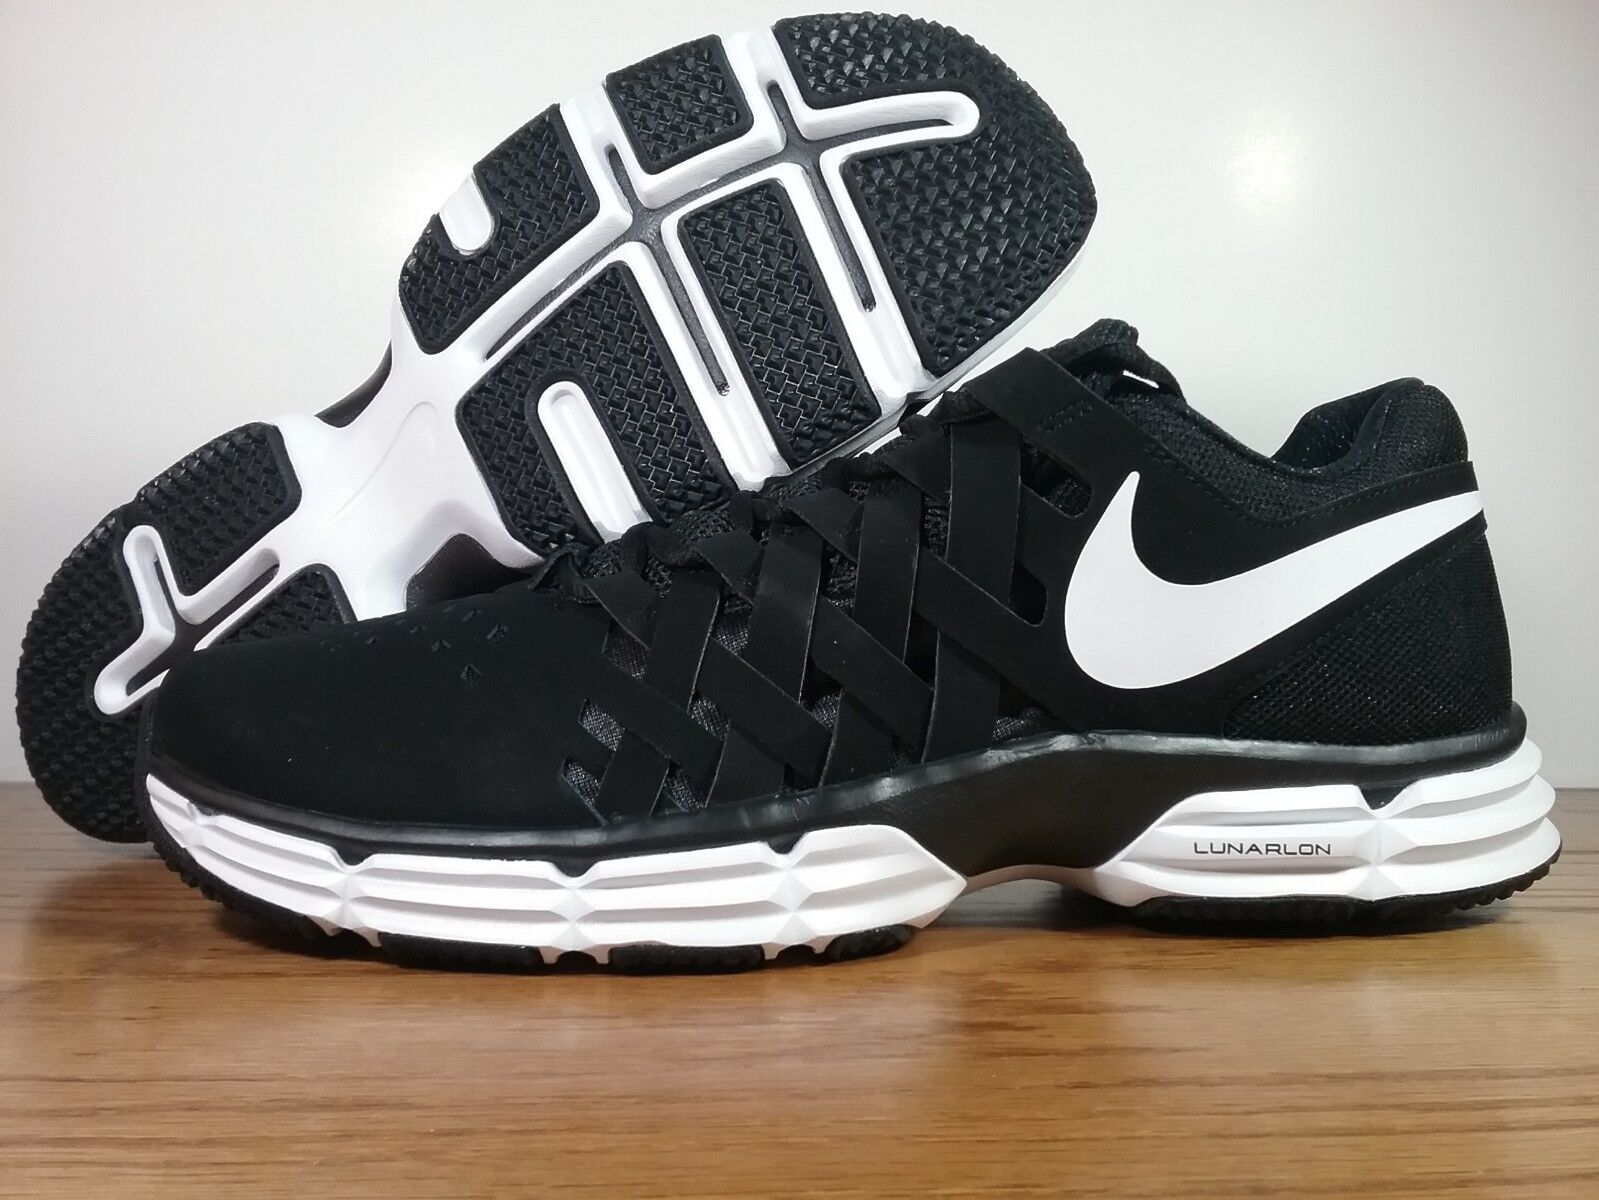 Nike Lunar Fingertrap TR Men's Running Gym shoes Black 898066-001 Men's Size 12